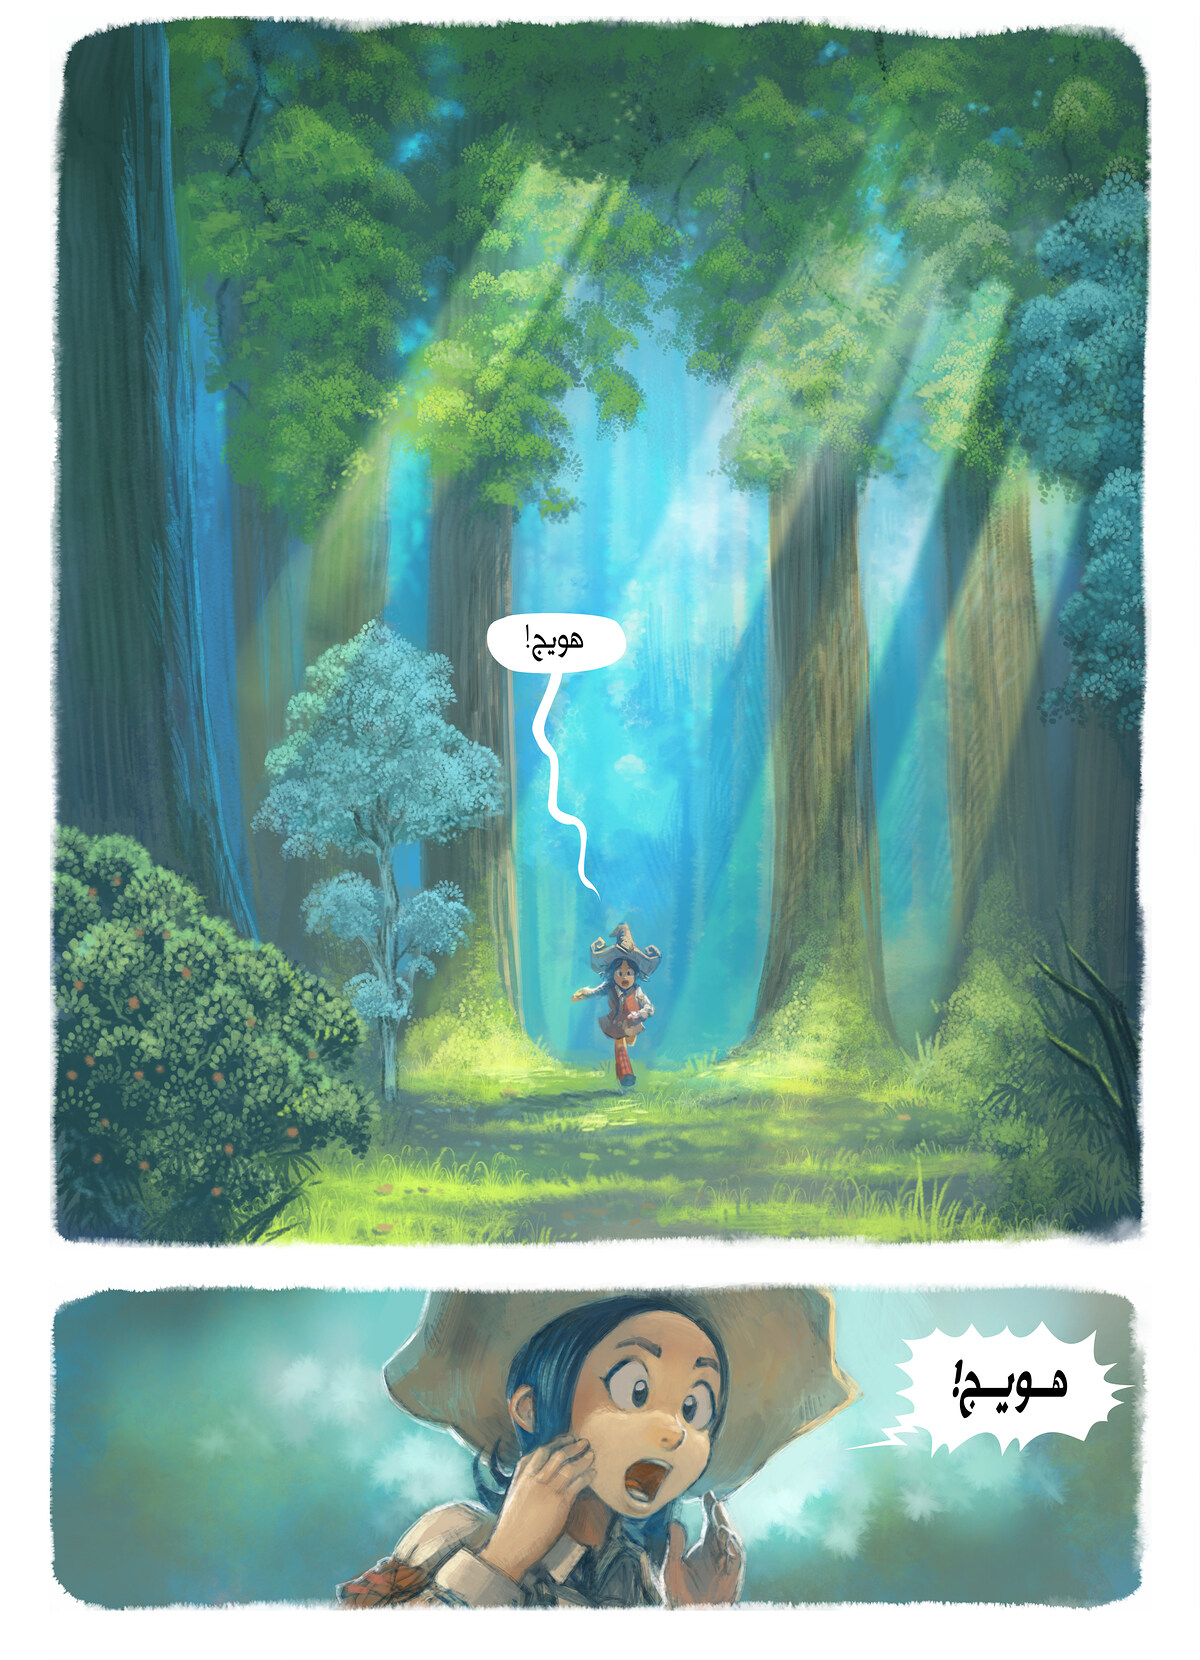 A webcomic page of Pepper&Carrot, episode 7 [fa], page 1